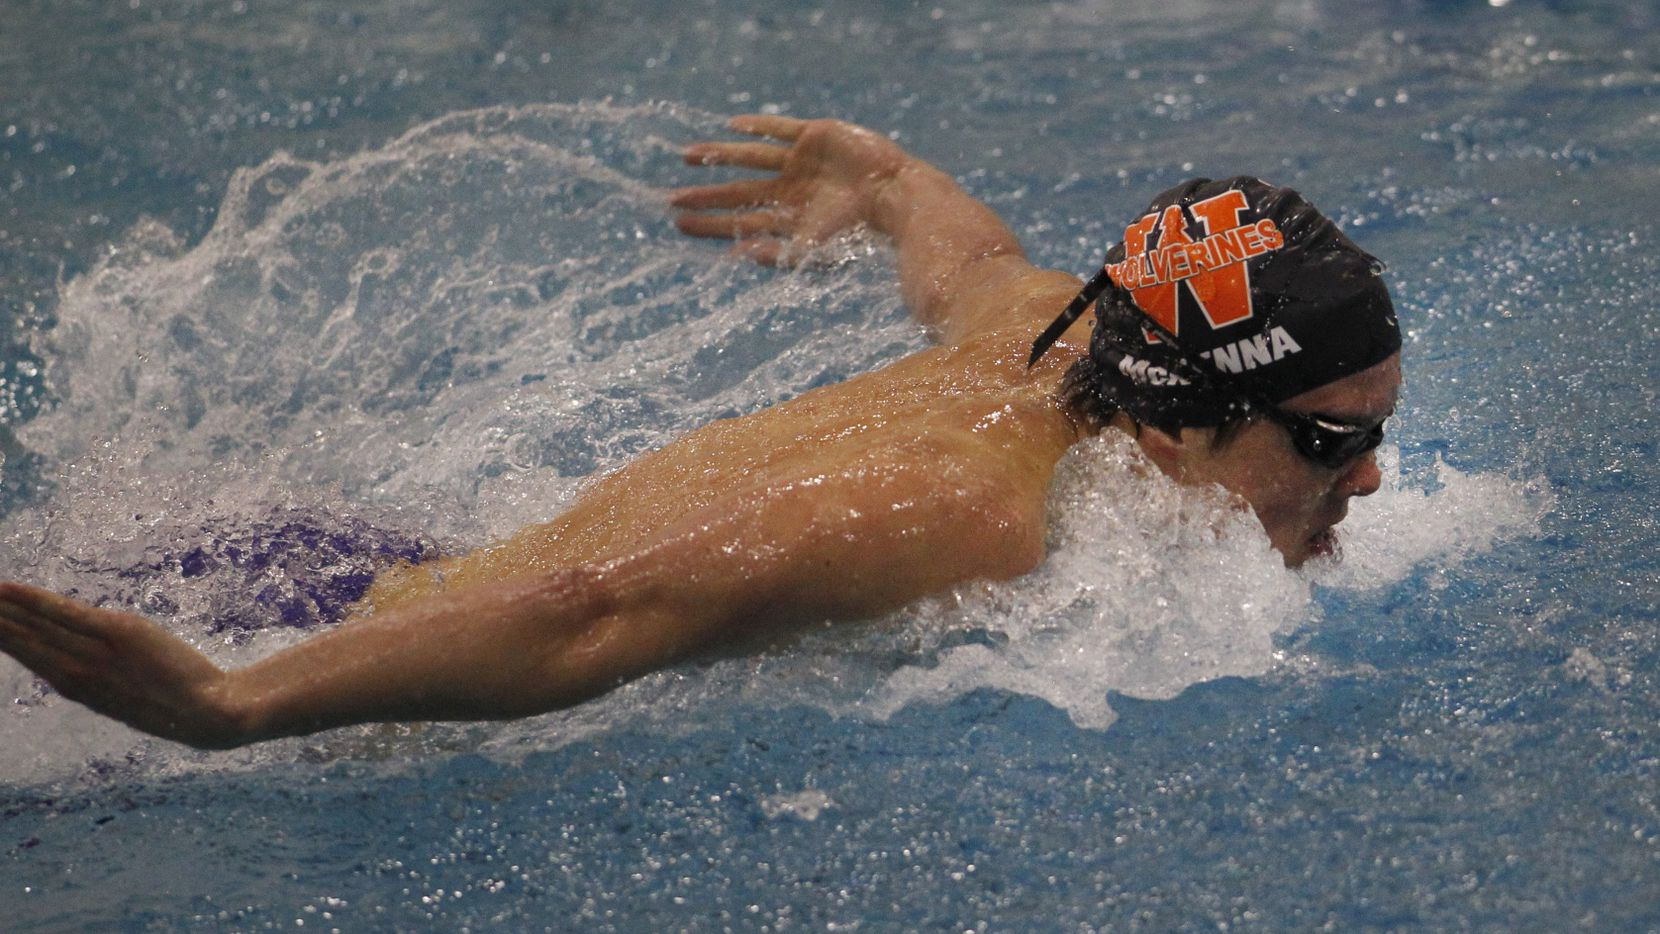 Frisco Wakeland's Conor McKenna powers to the finish line to win the Boys 100 yard Butterfly event with a Region record time of 48.48 seconds. The Class 5A Region lll UIL Swim Meet was held at the Bruce Eubanks Natatorium in Frisco on February 6, 2021. (Steve Hamm/ Special Contributor)